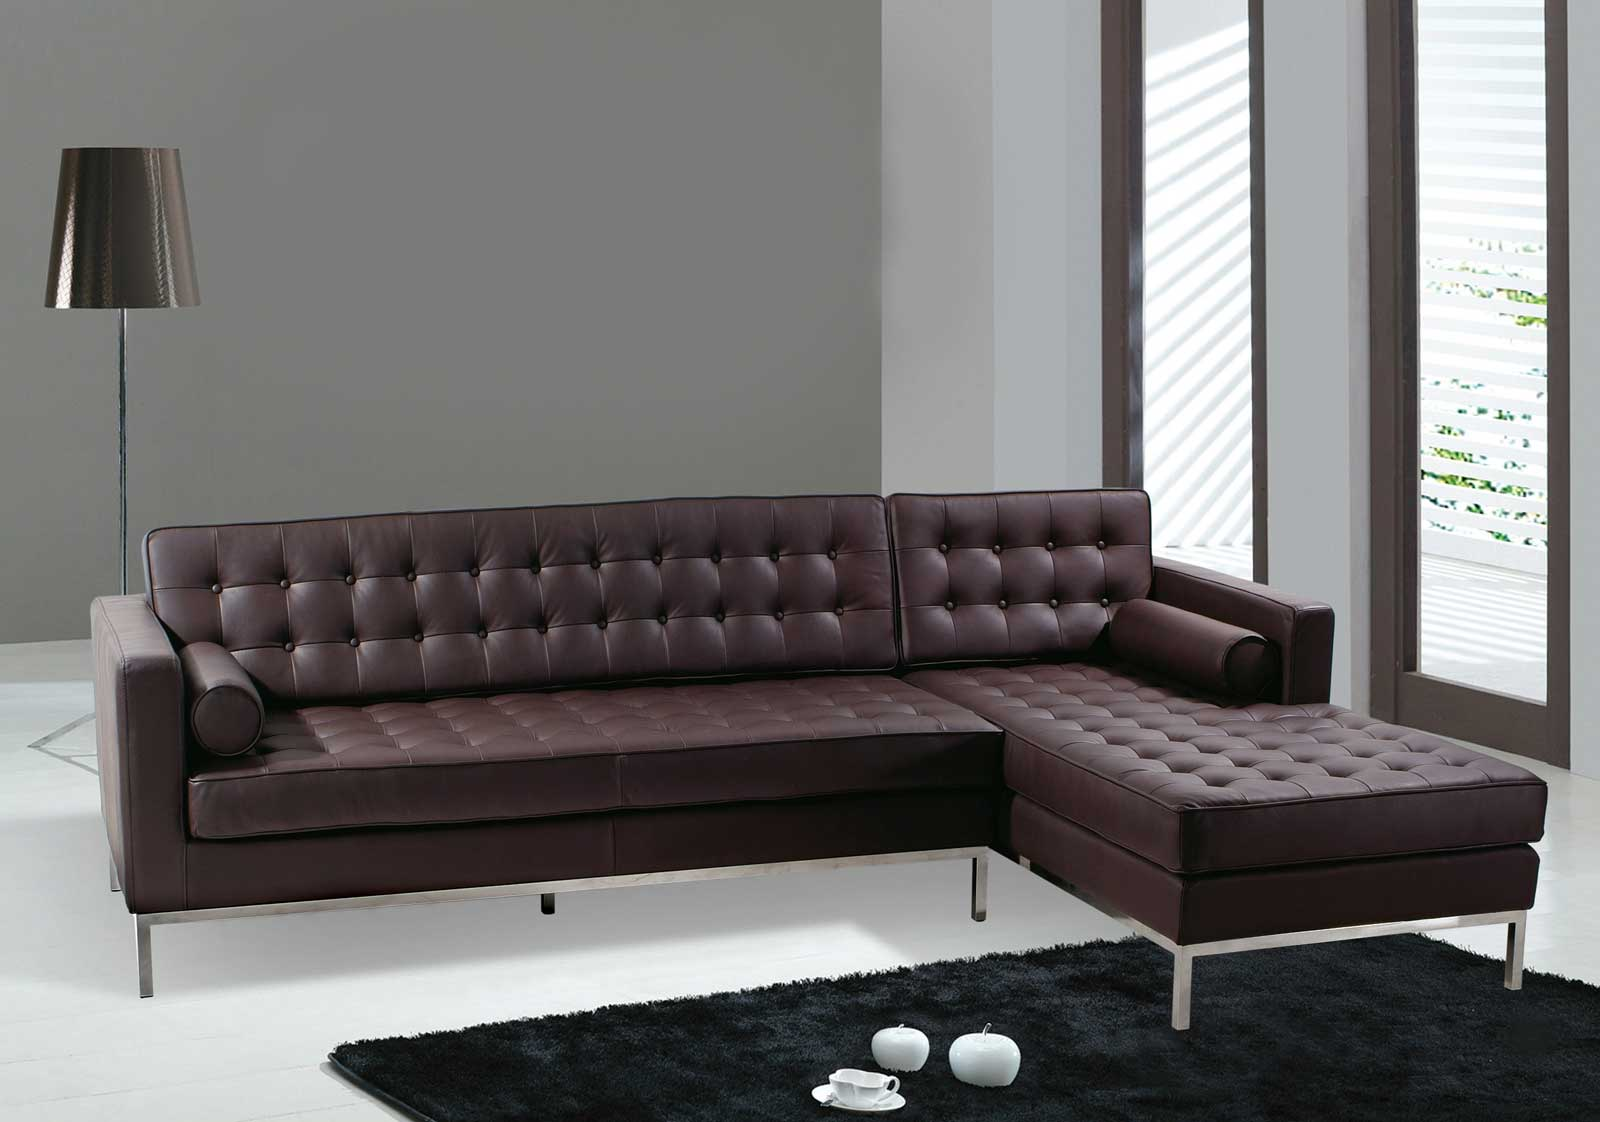 Contemporary Leather Furniture Santa Fe Contemporary Leather Sofa Bed